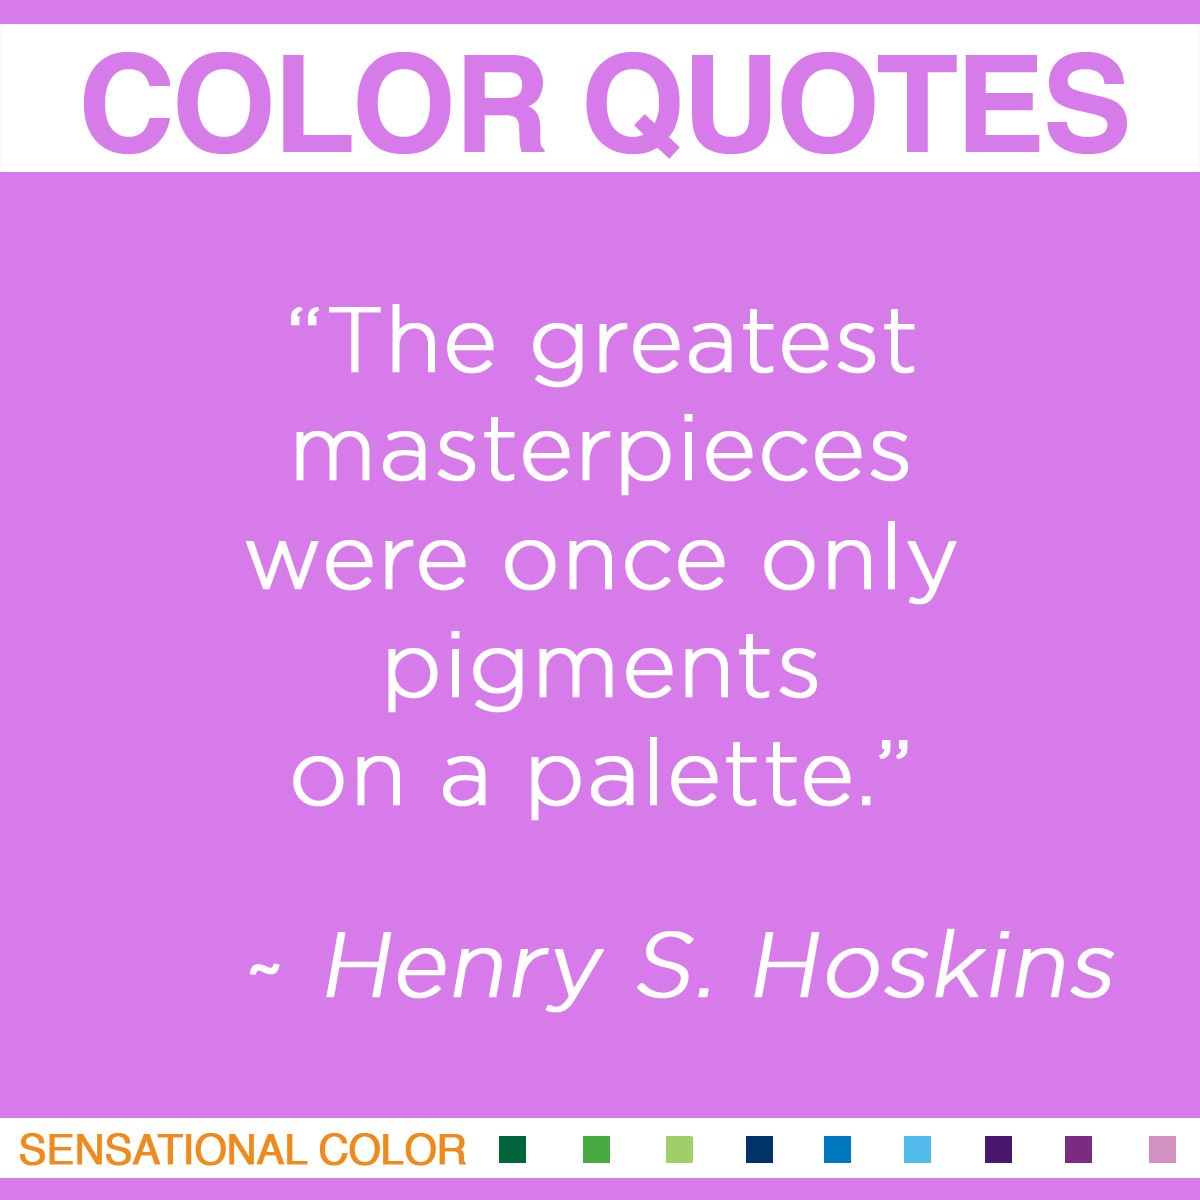 Hoskins Quote About Color